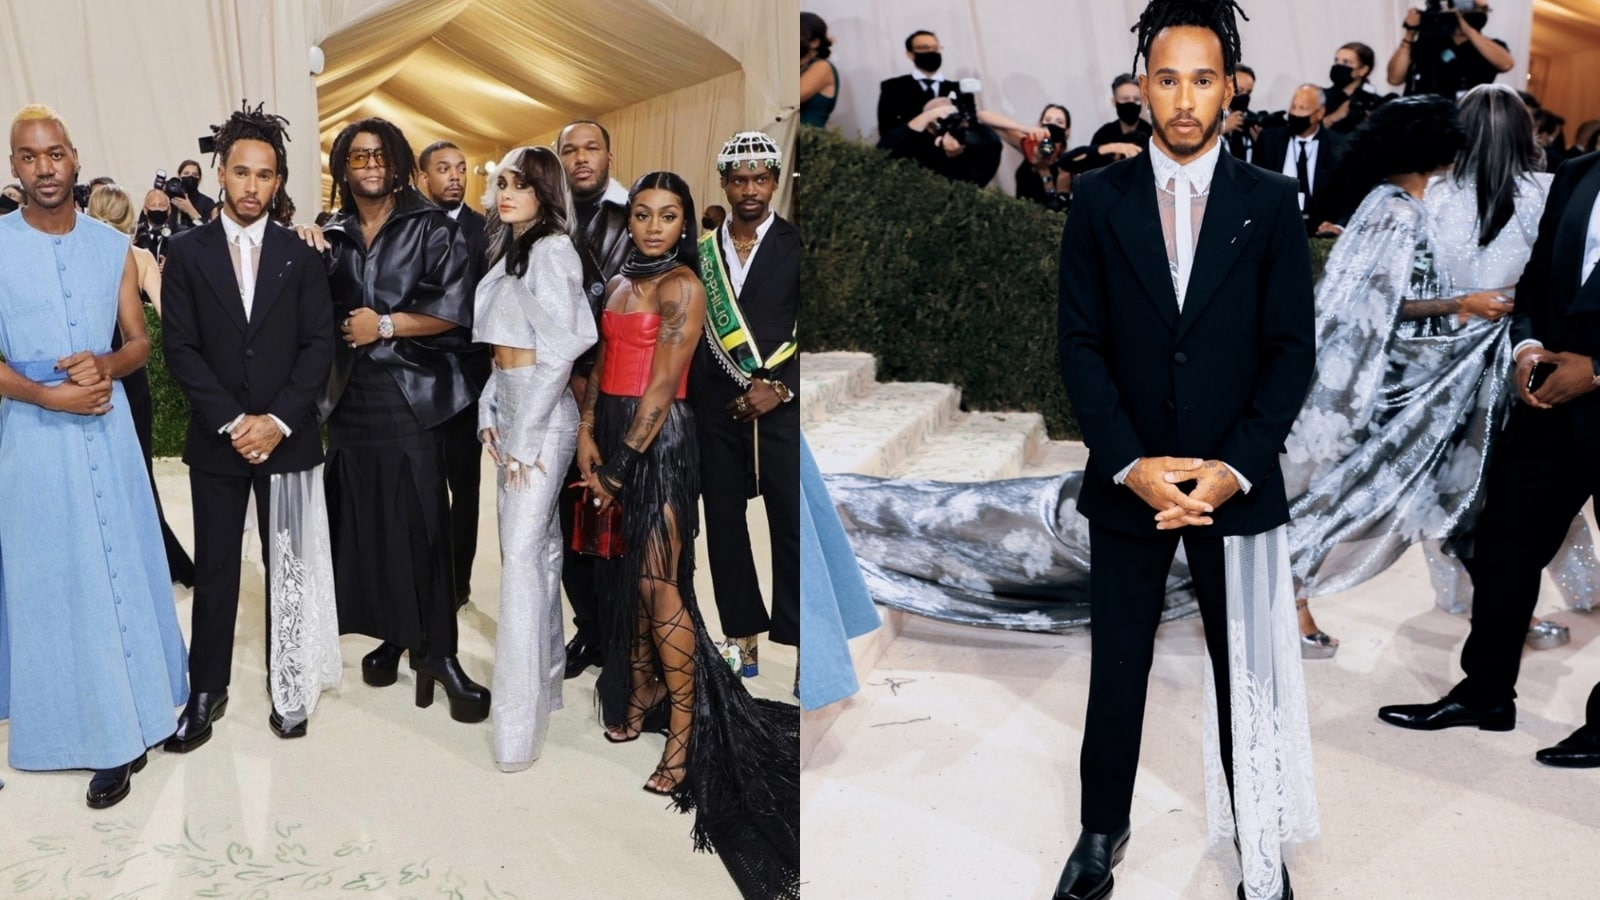 Lewis Hamilton Courts Controversy by Supporting 'Black Creatives' in Met Gala